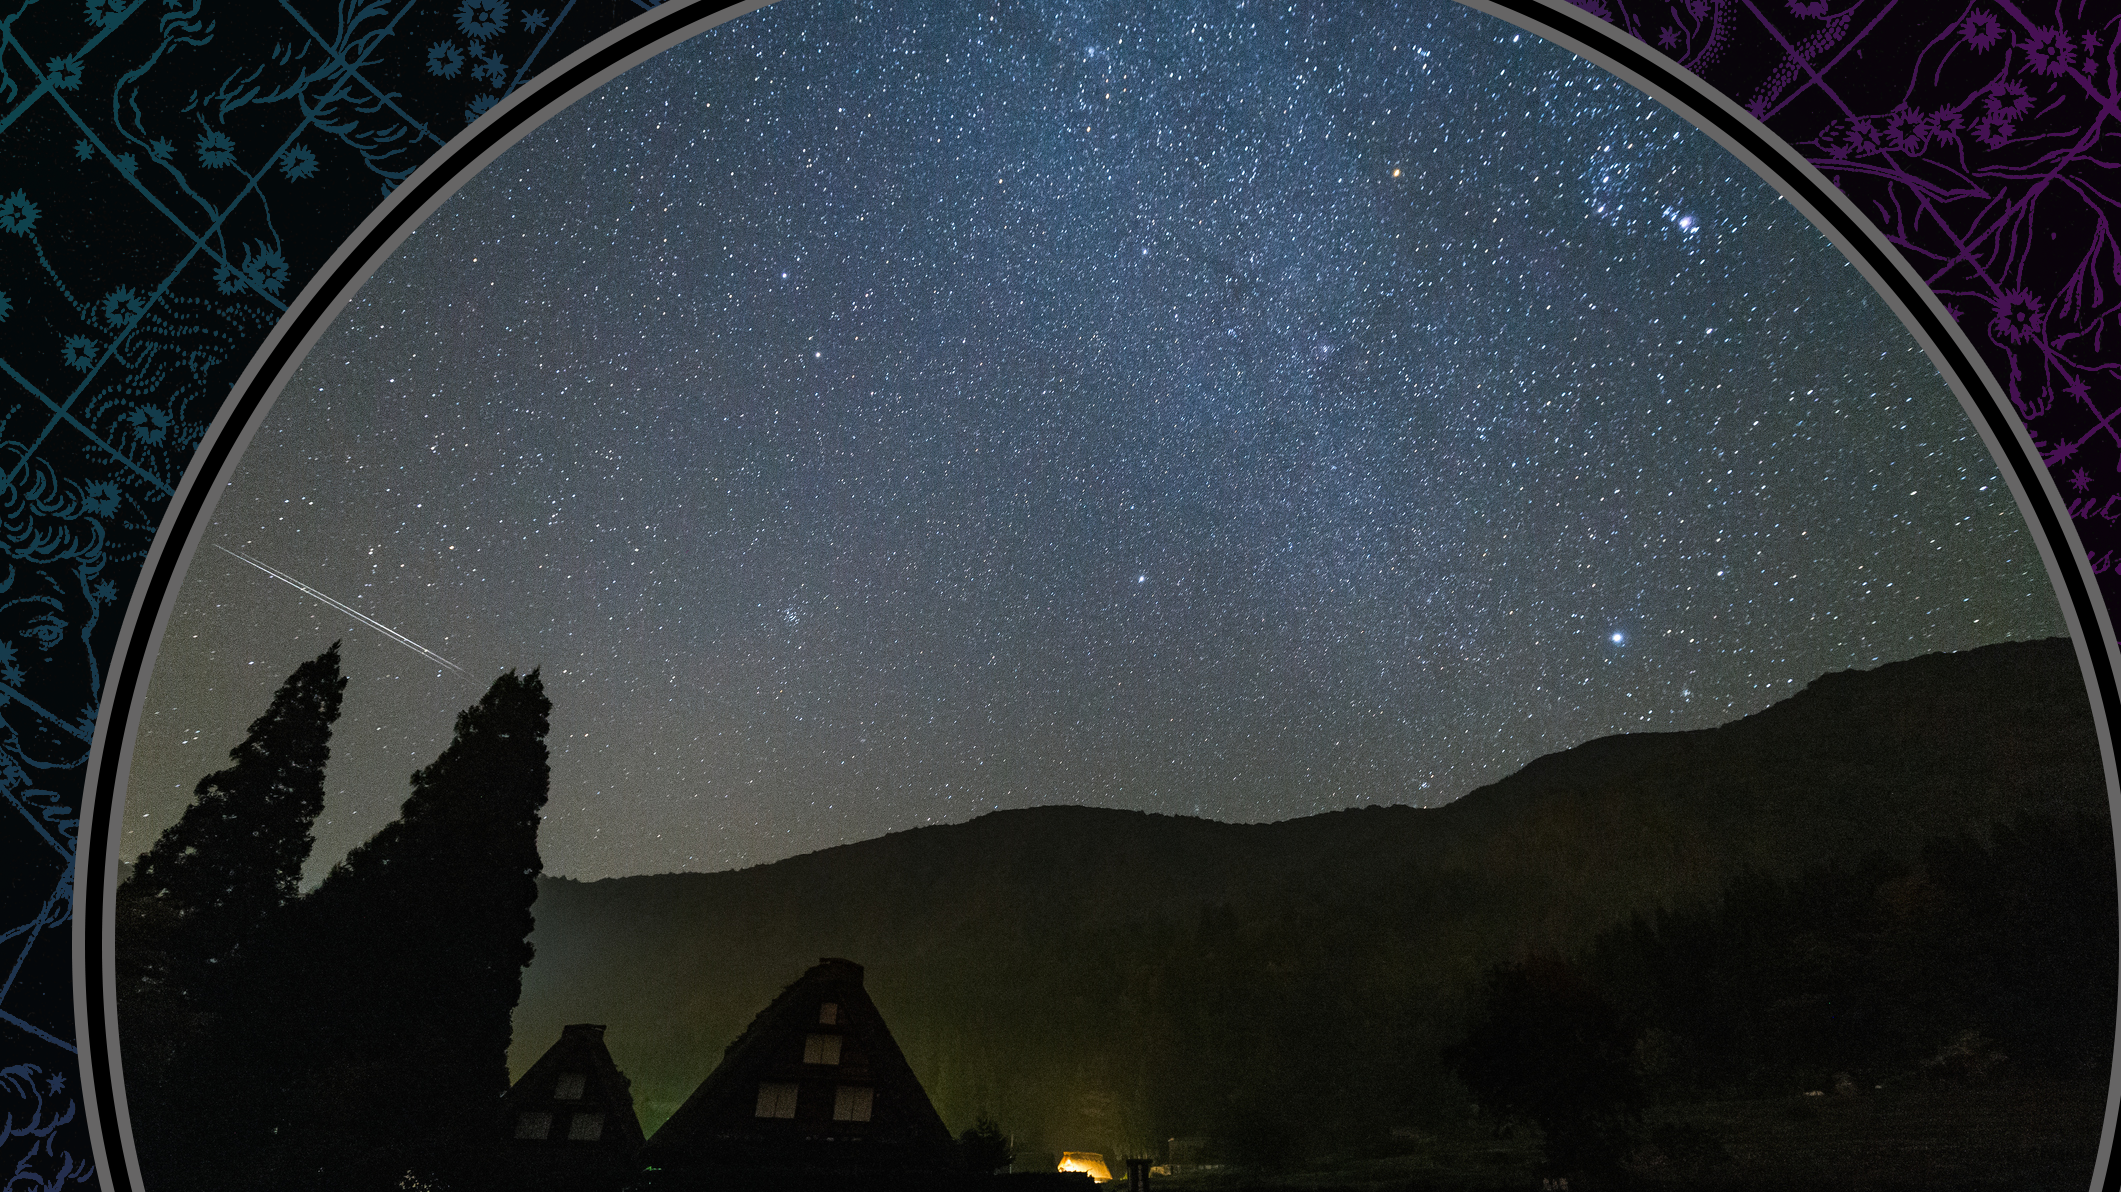 Don't Miss the Orionid Meteor Shower Peaking This October